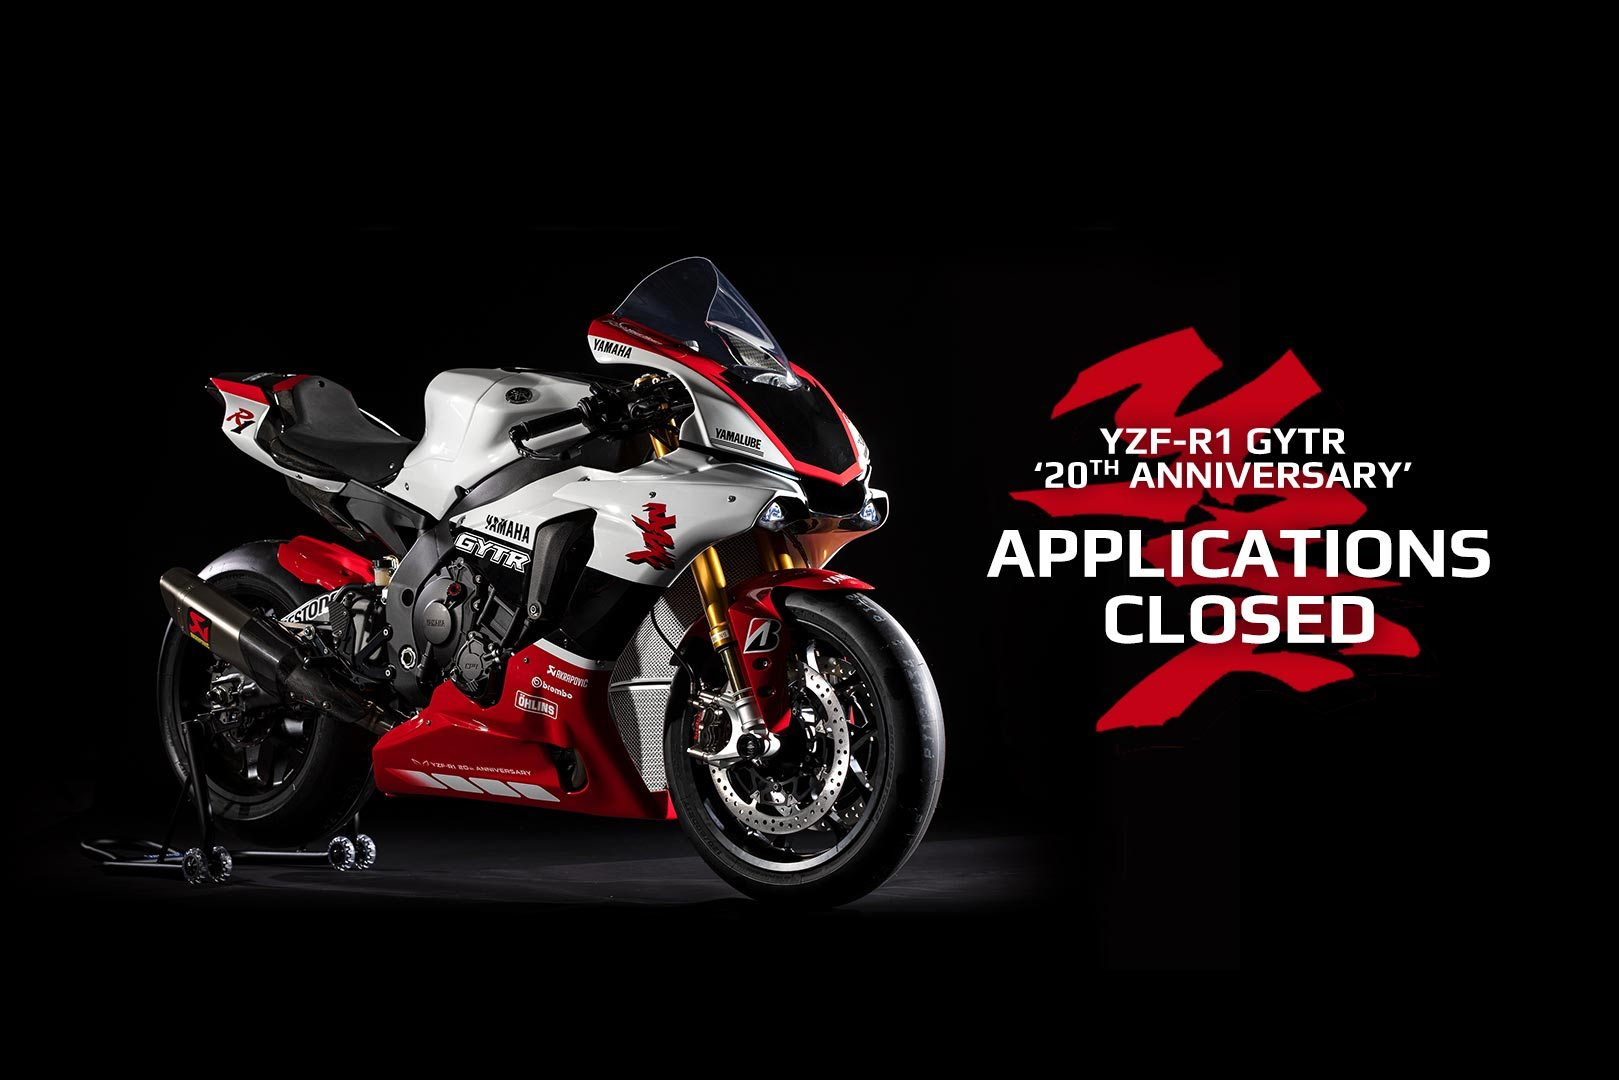 Sold Out Yamaha YZF-R1 GYTR Habis Terjual